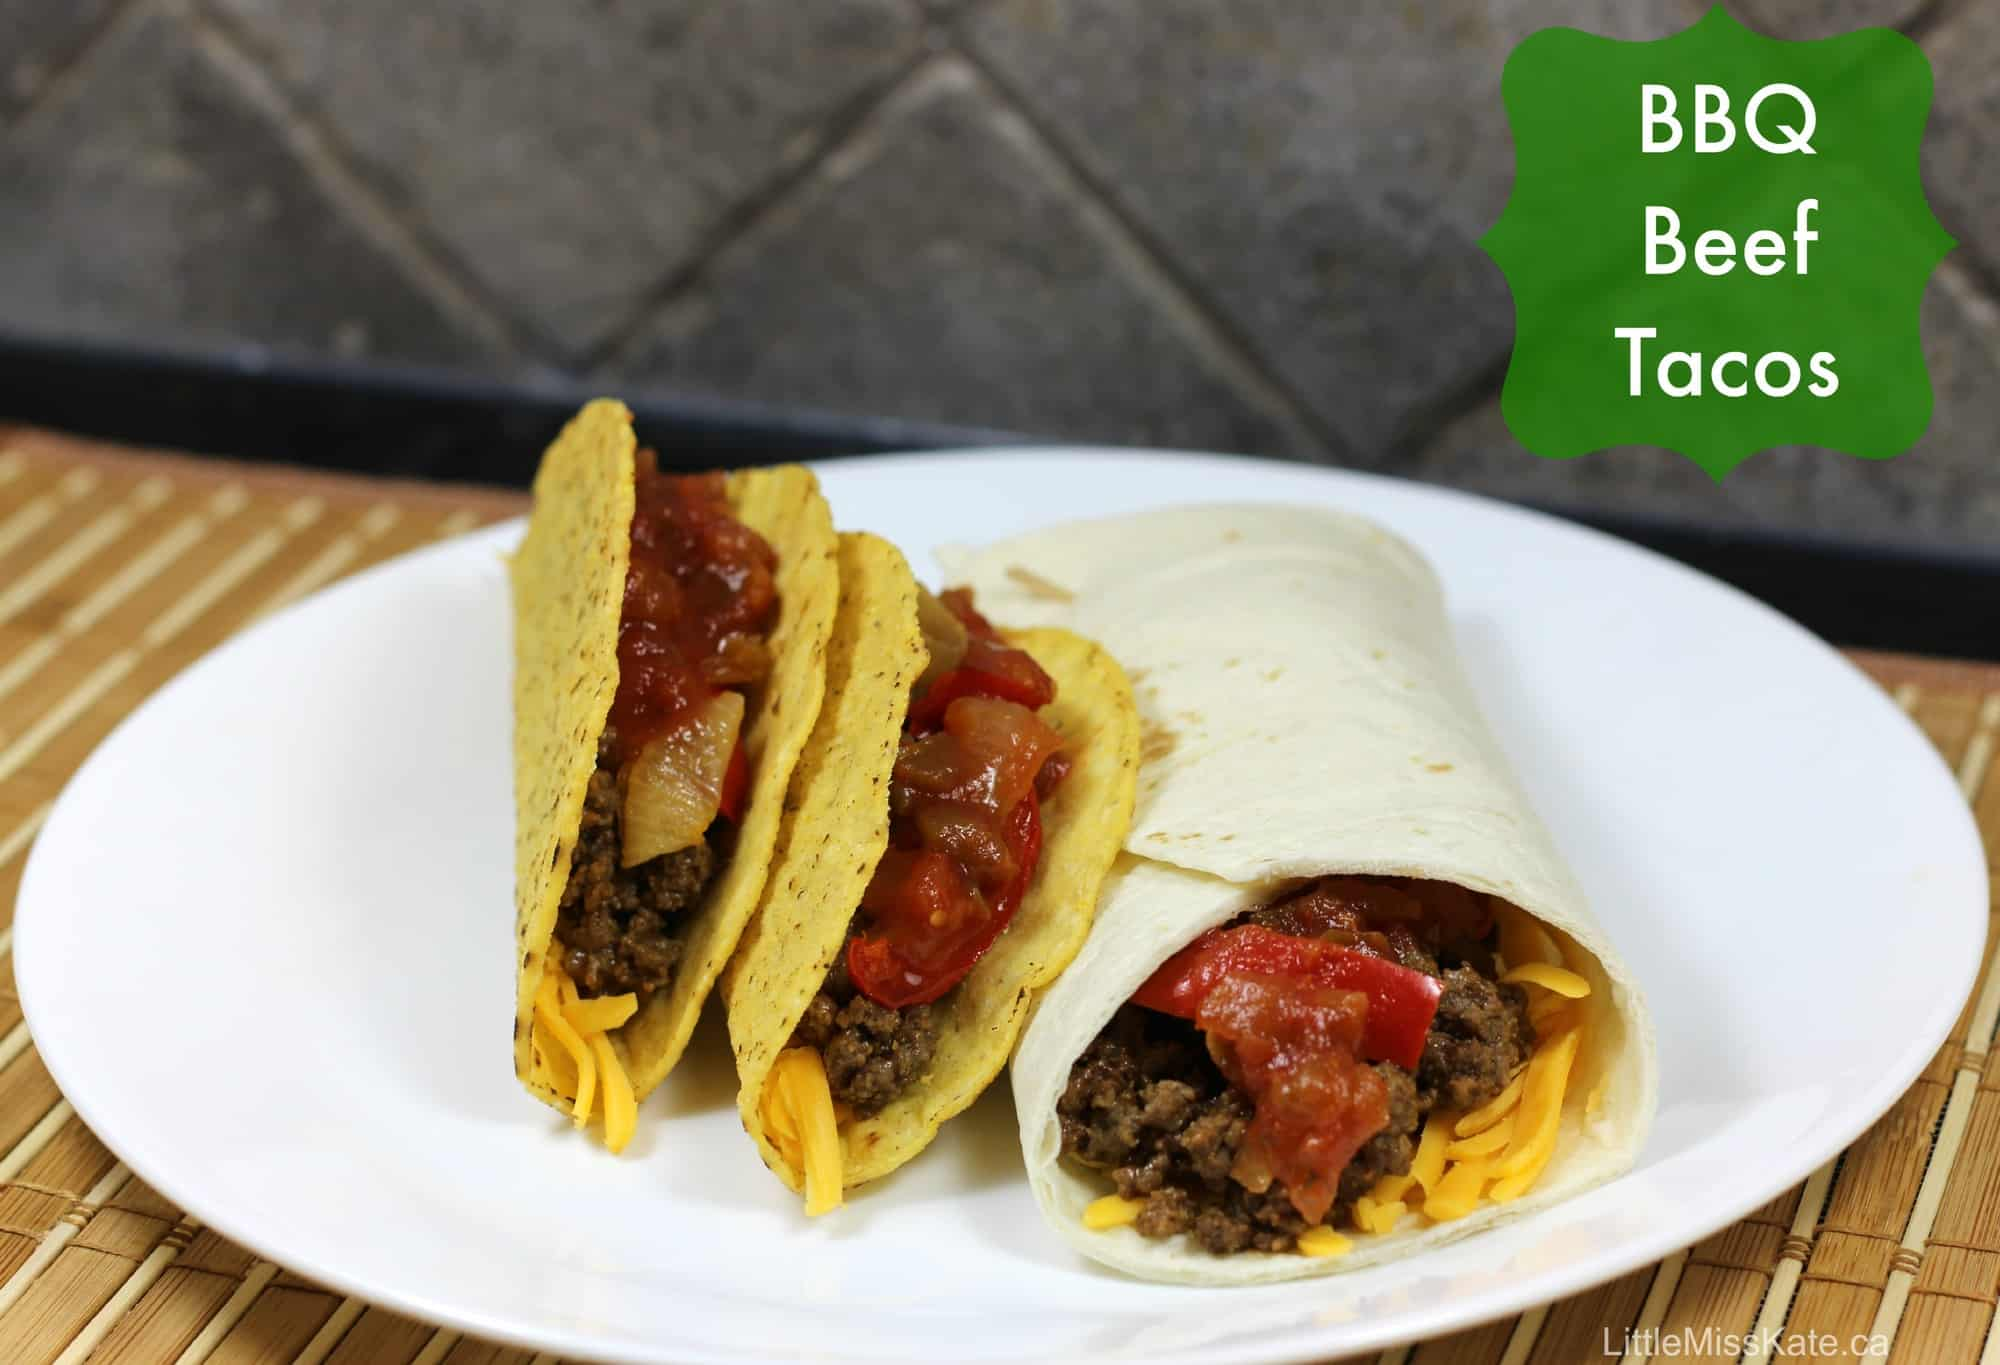 Healthy Dinner Ideas Bbq Beef Taco Recipe Whatscooking